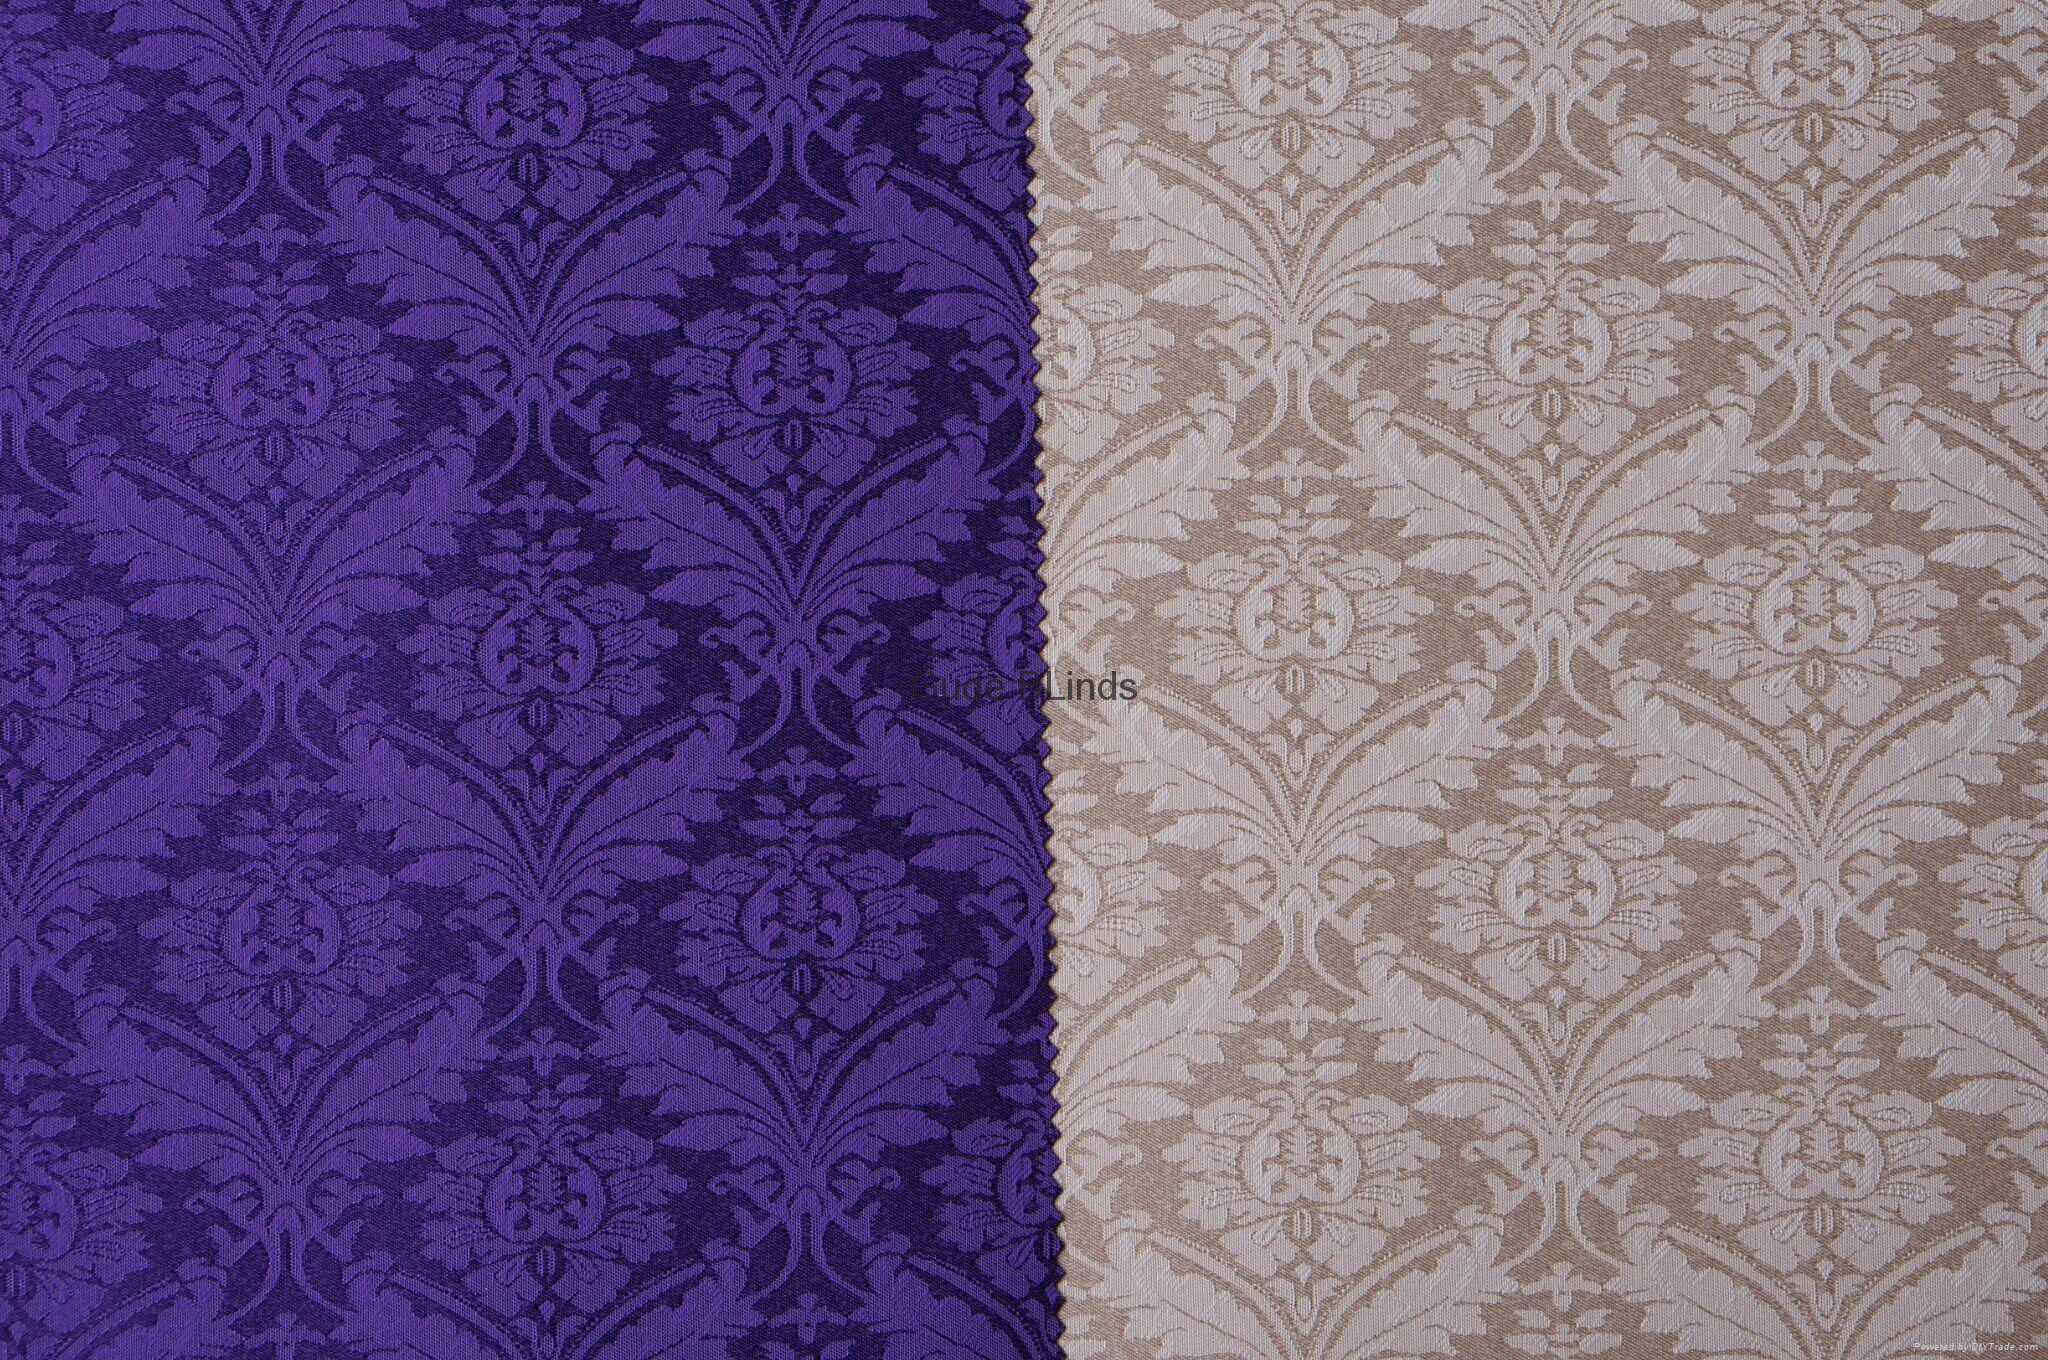 Roller Blinds Fabric 230 4